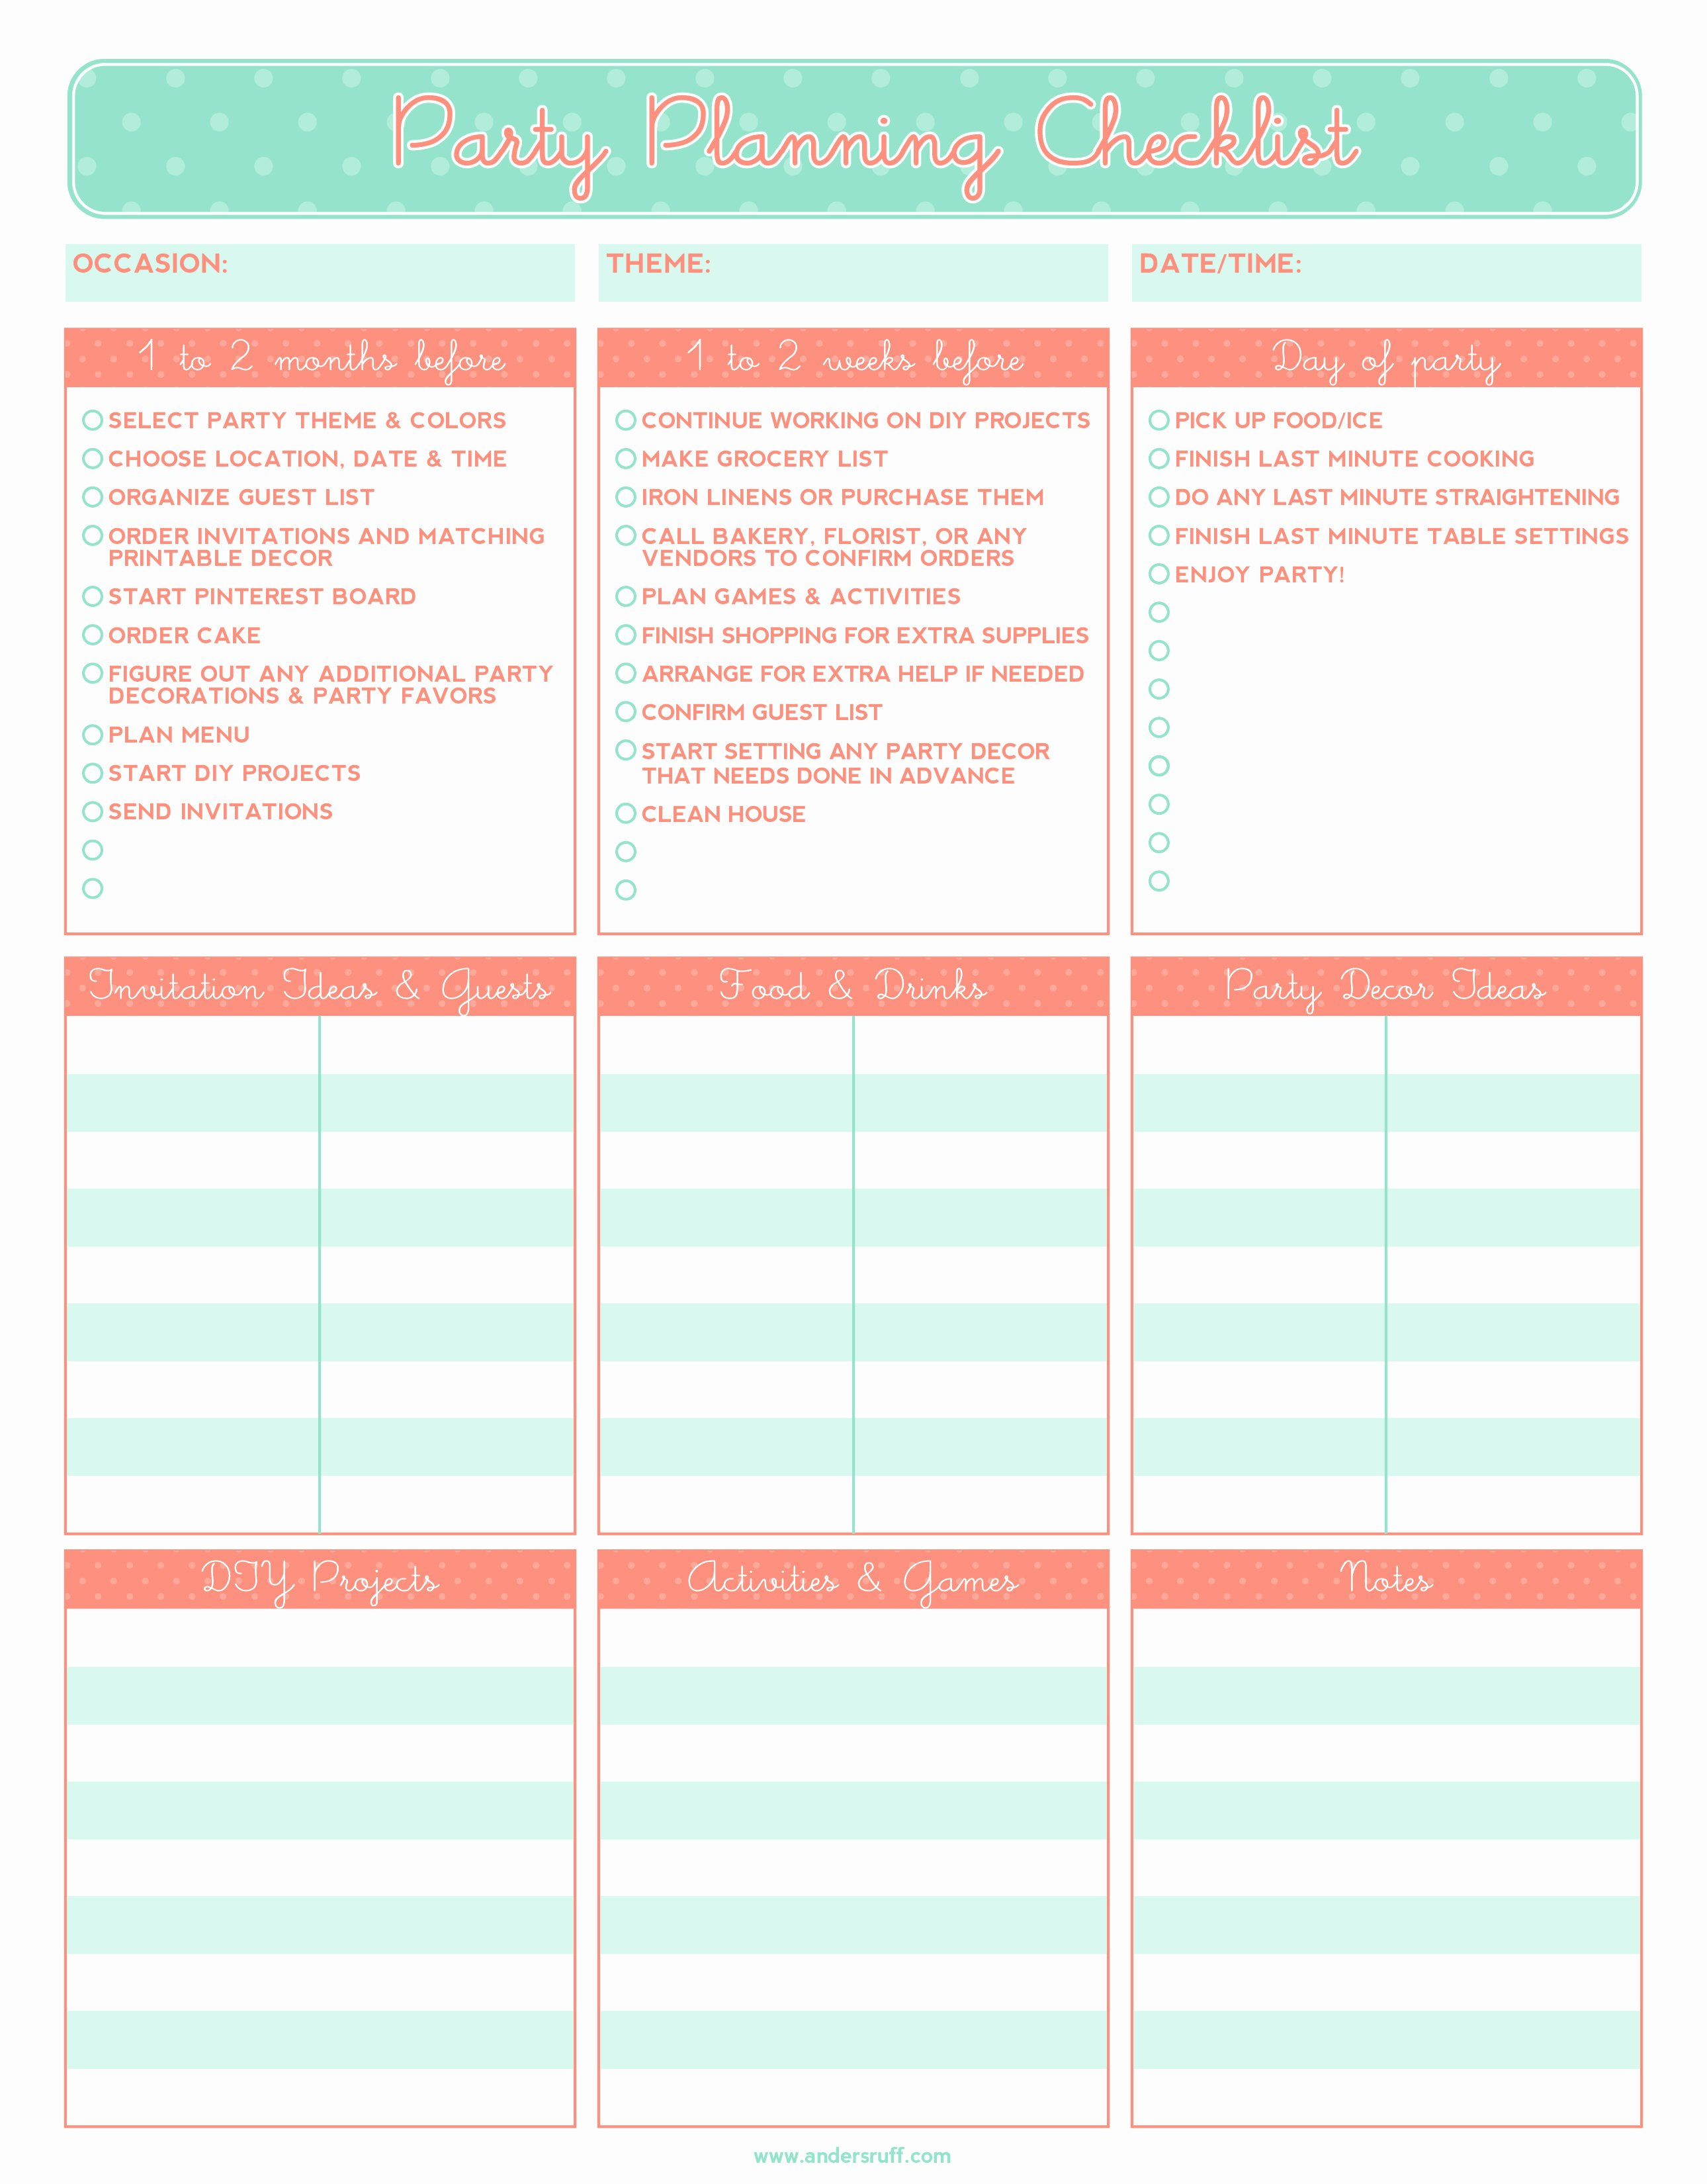 Event Planning Template Free Fresh 5 Party Planning Templates Excel Xlts